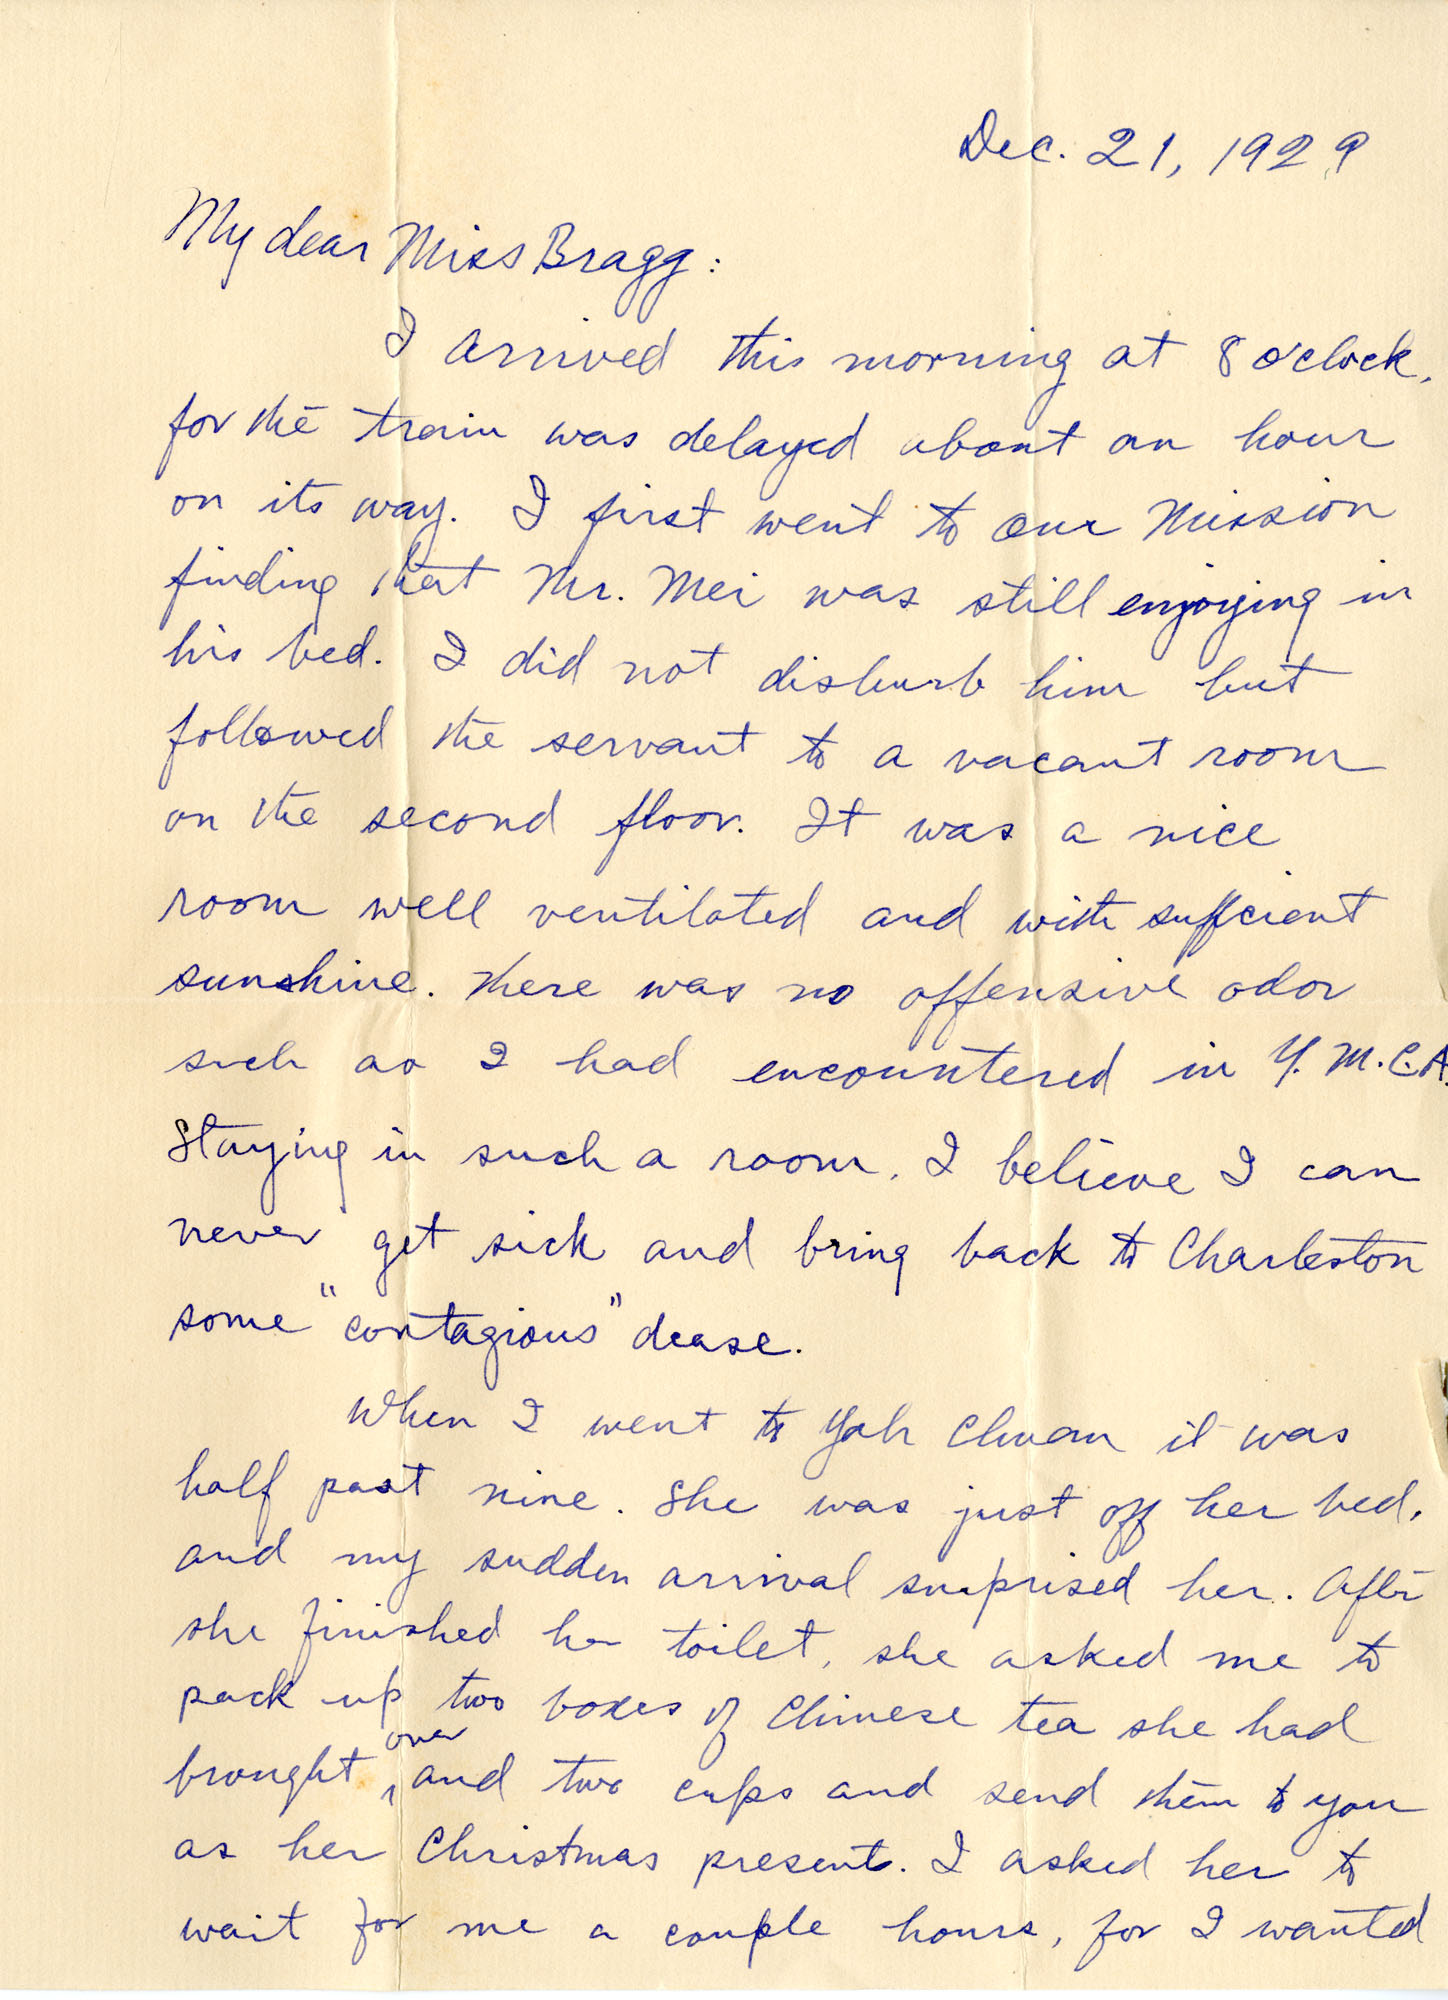 Letter from Fong Lee Wong to Laura M. Bragg, December 21, 1929